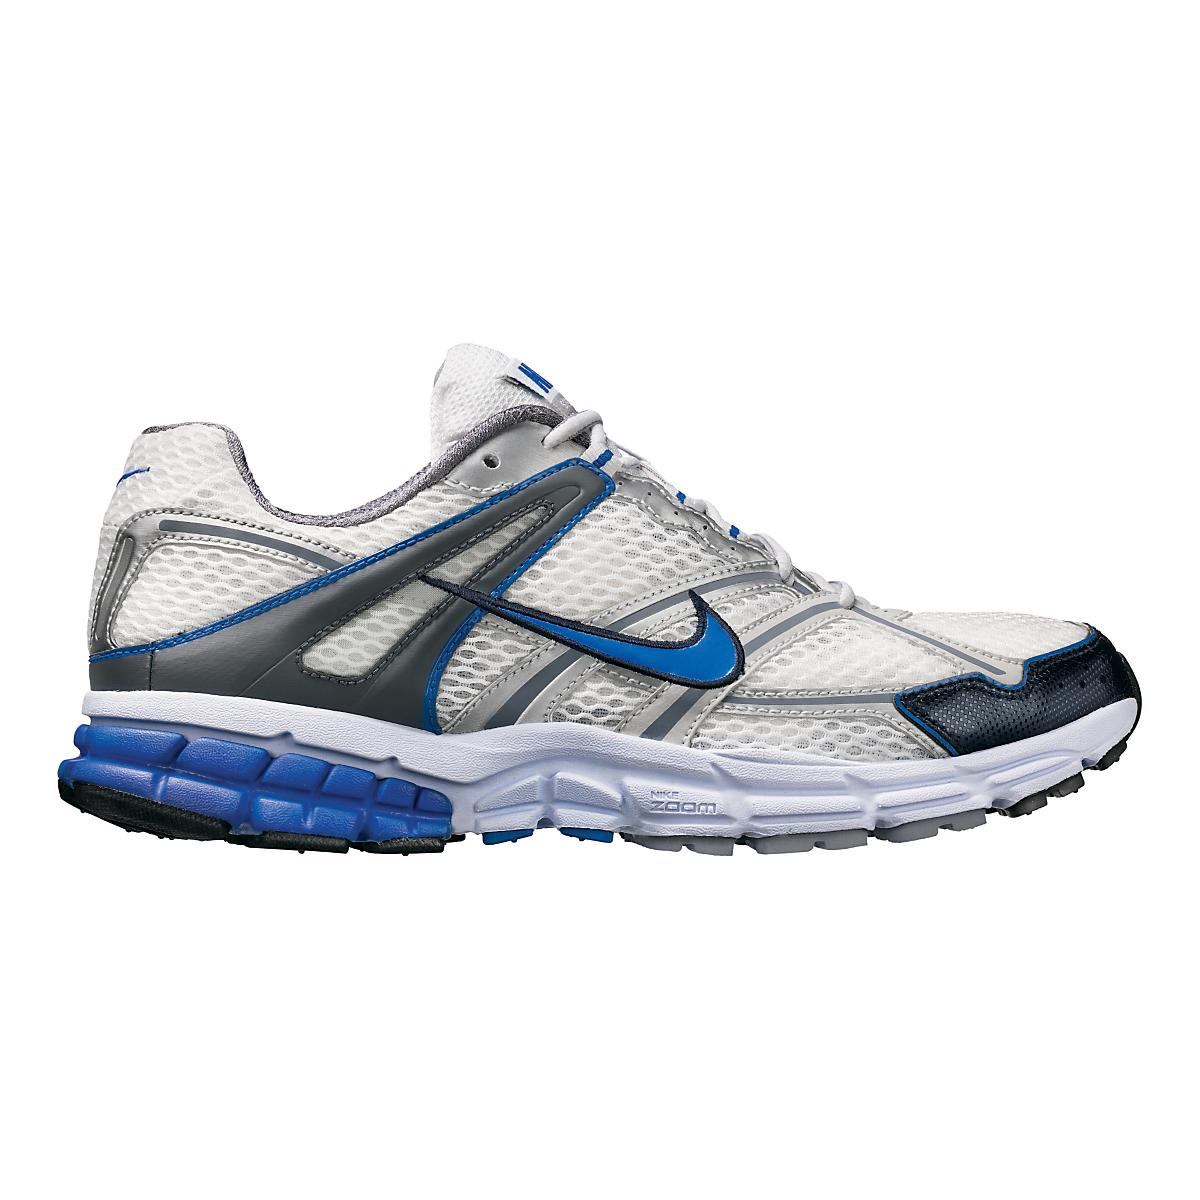 Mens Nike Zoom Structure Triax+ 13 Running Shoe at Road Runner Sports 257e73e1f4